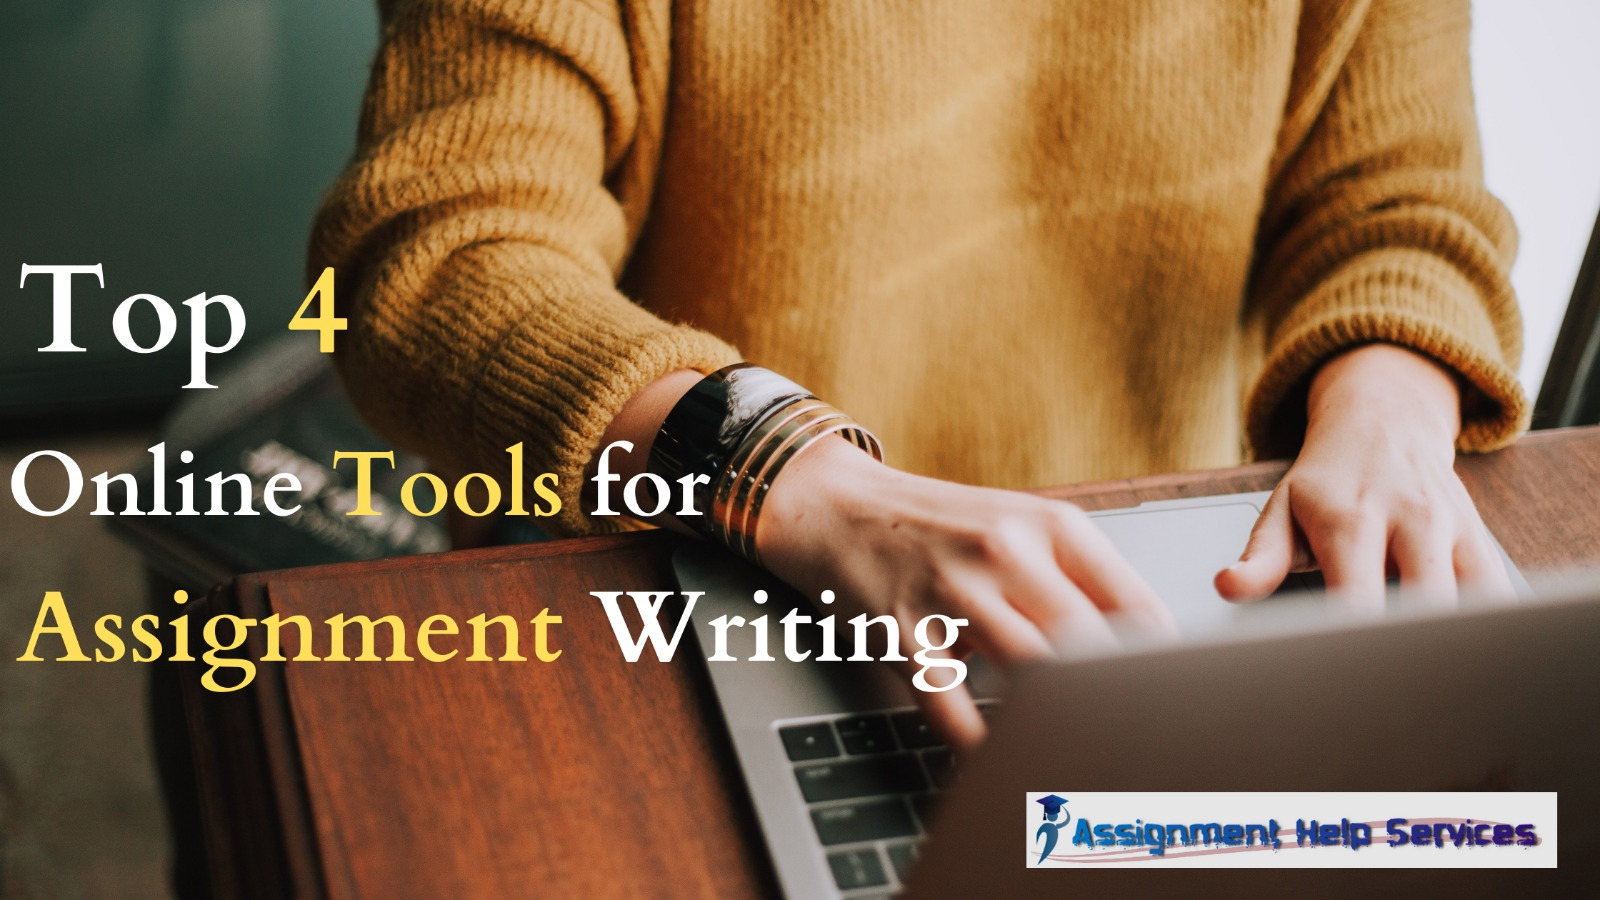 Top Four Online Tools for Assignment Writing